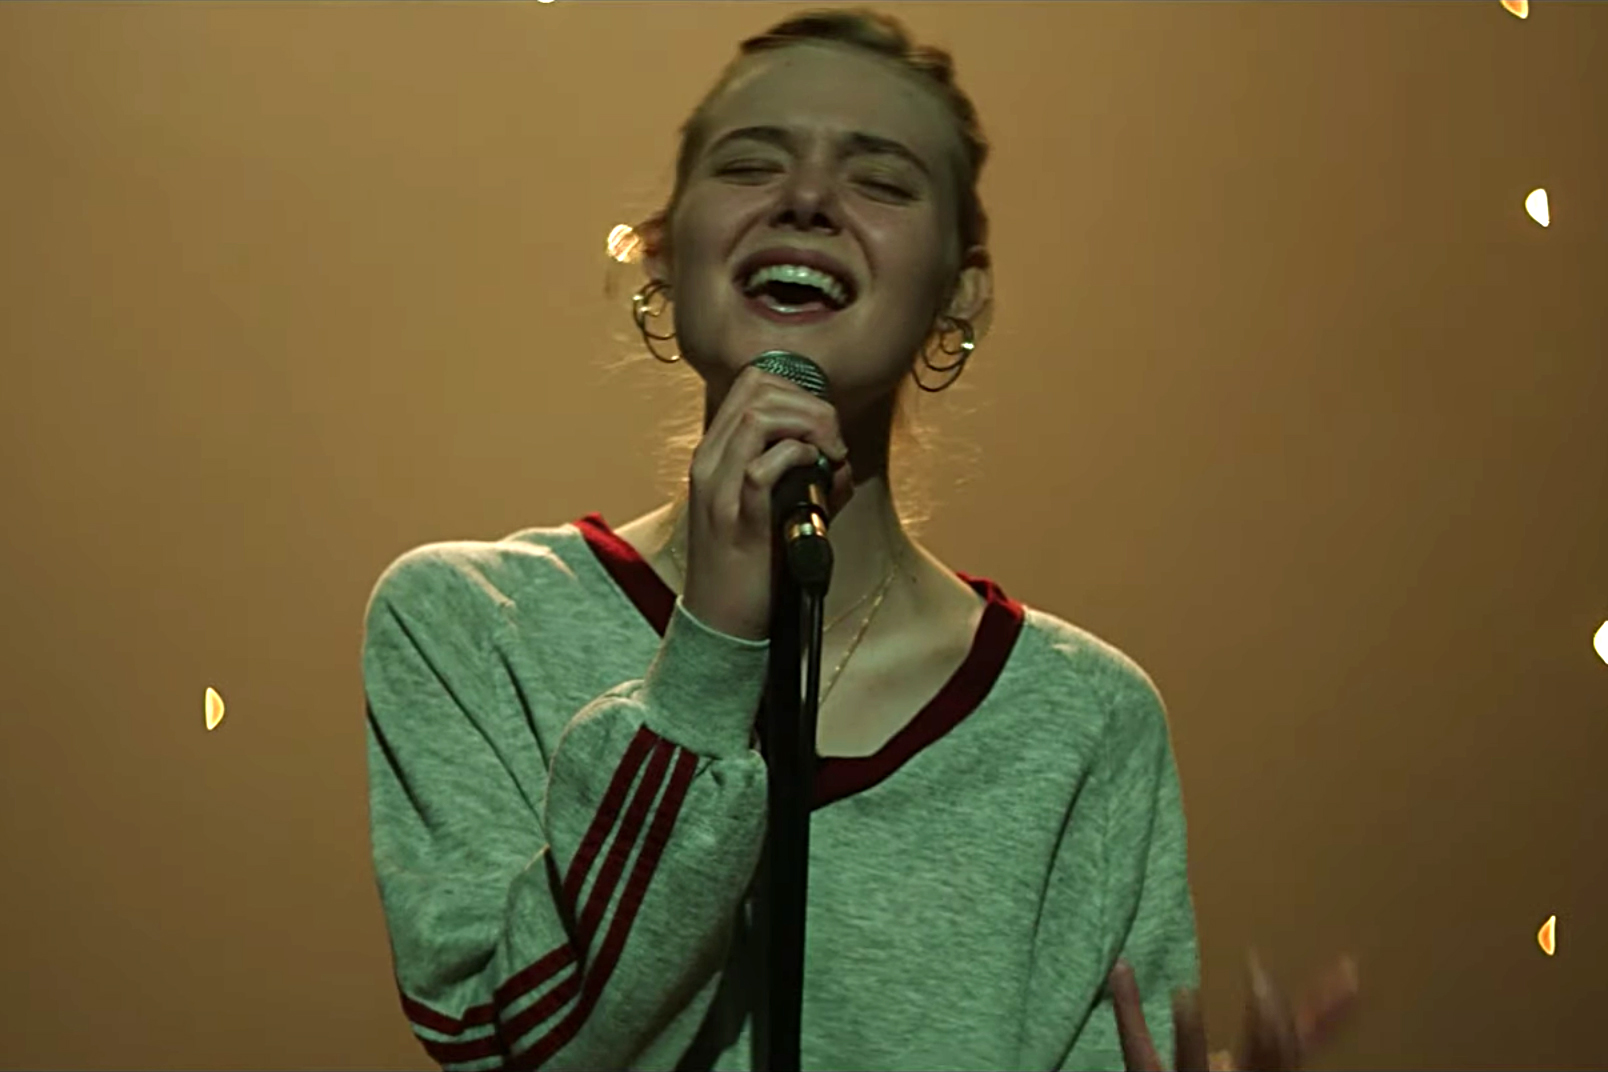 Watch Elle Fanning's Full Performance of Robyn's 'Dancing On My Own' in 'Teen Spirit' Clip